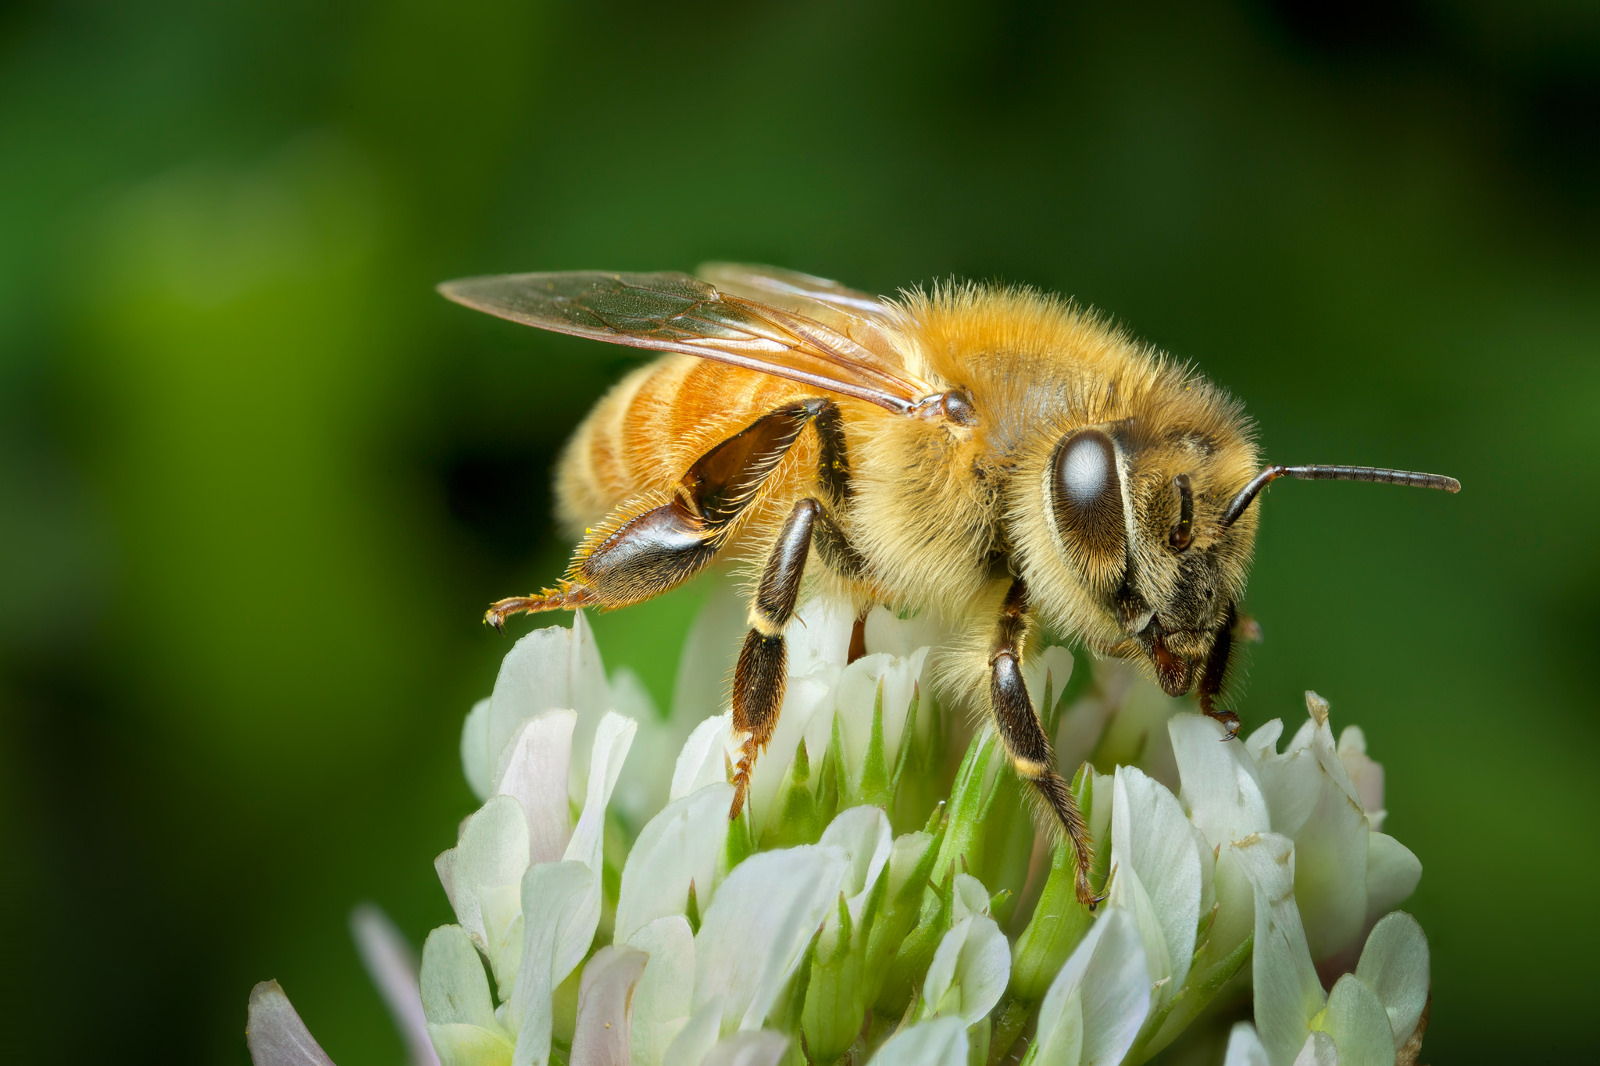 10 Ways to Save Pollinators and Protect Our Food Supply